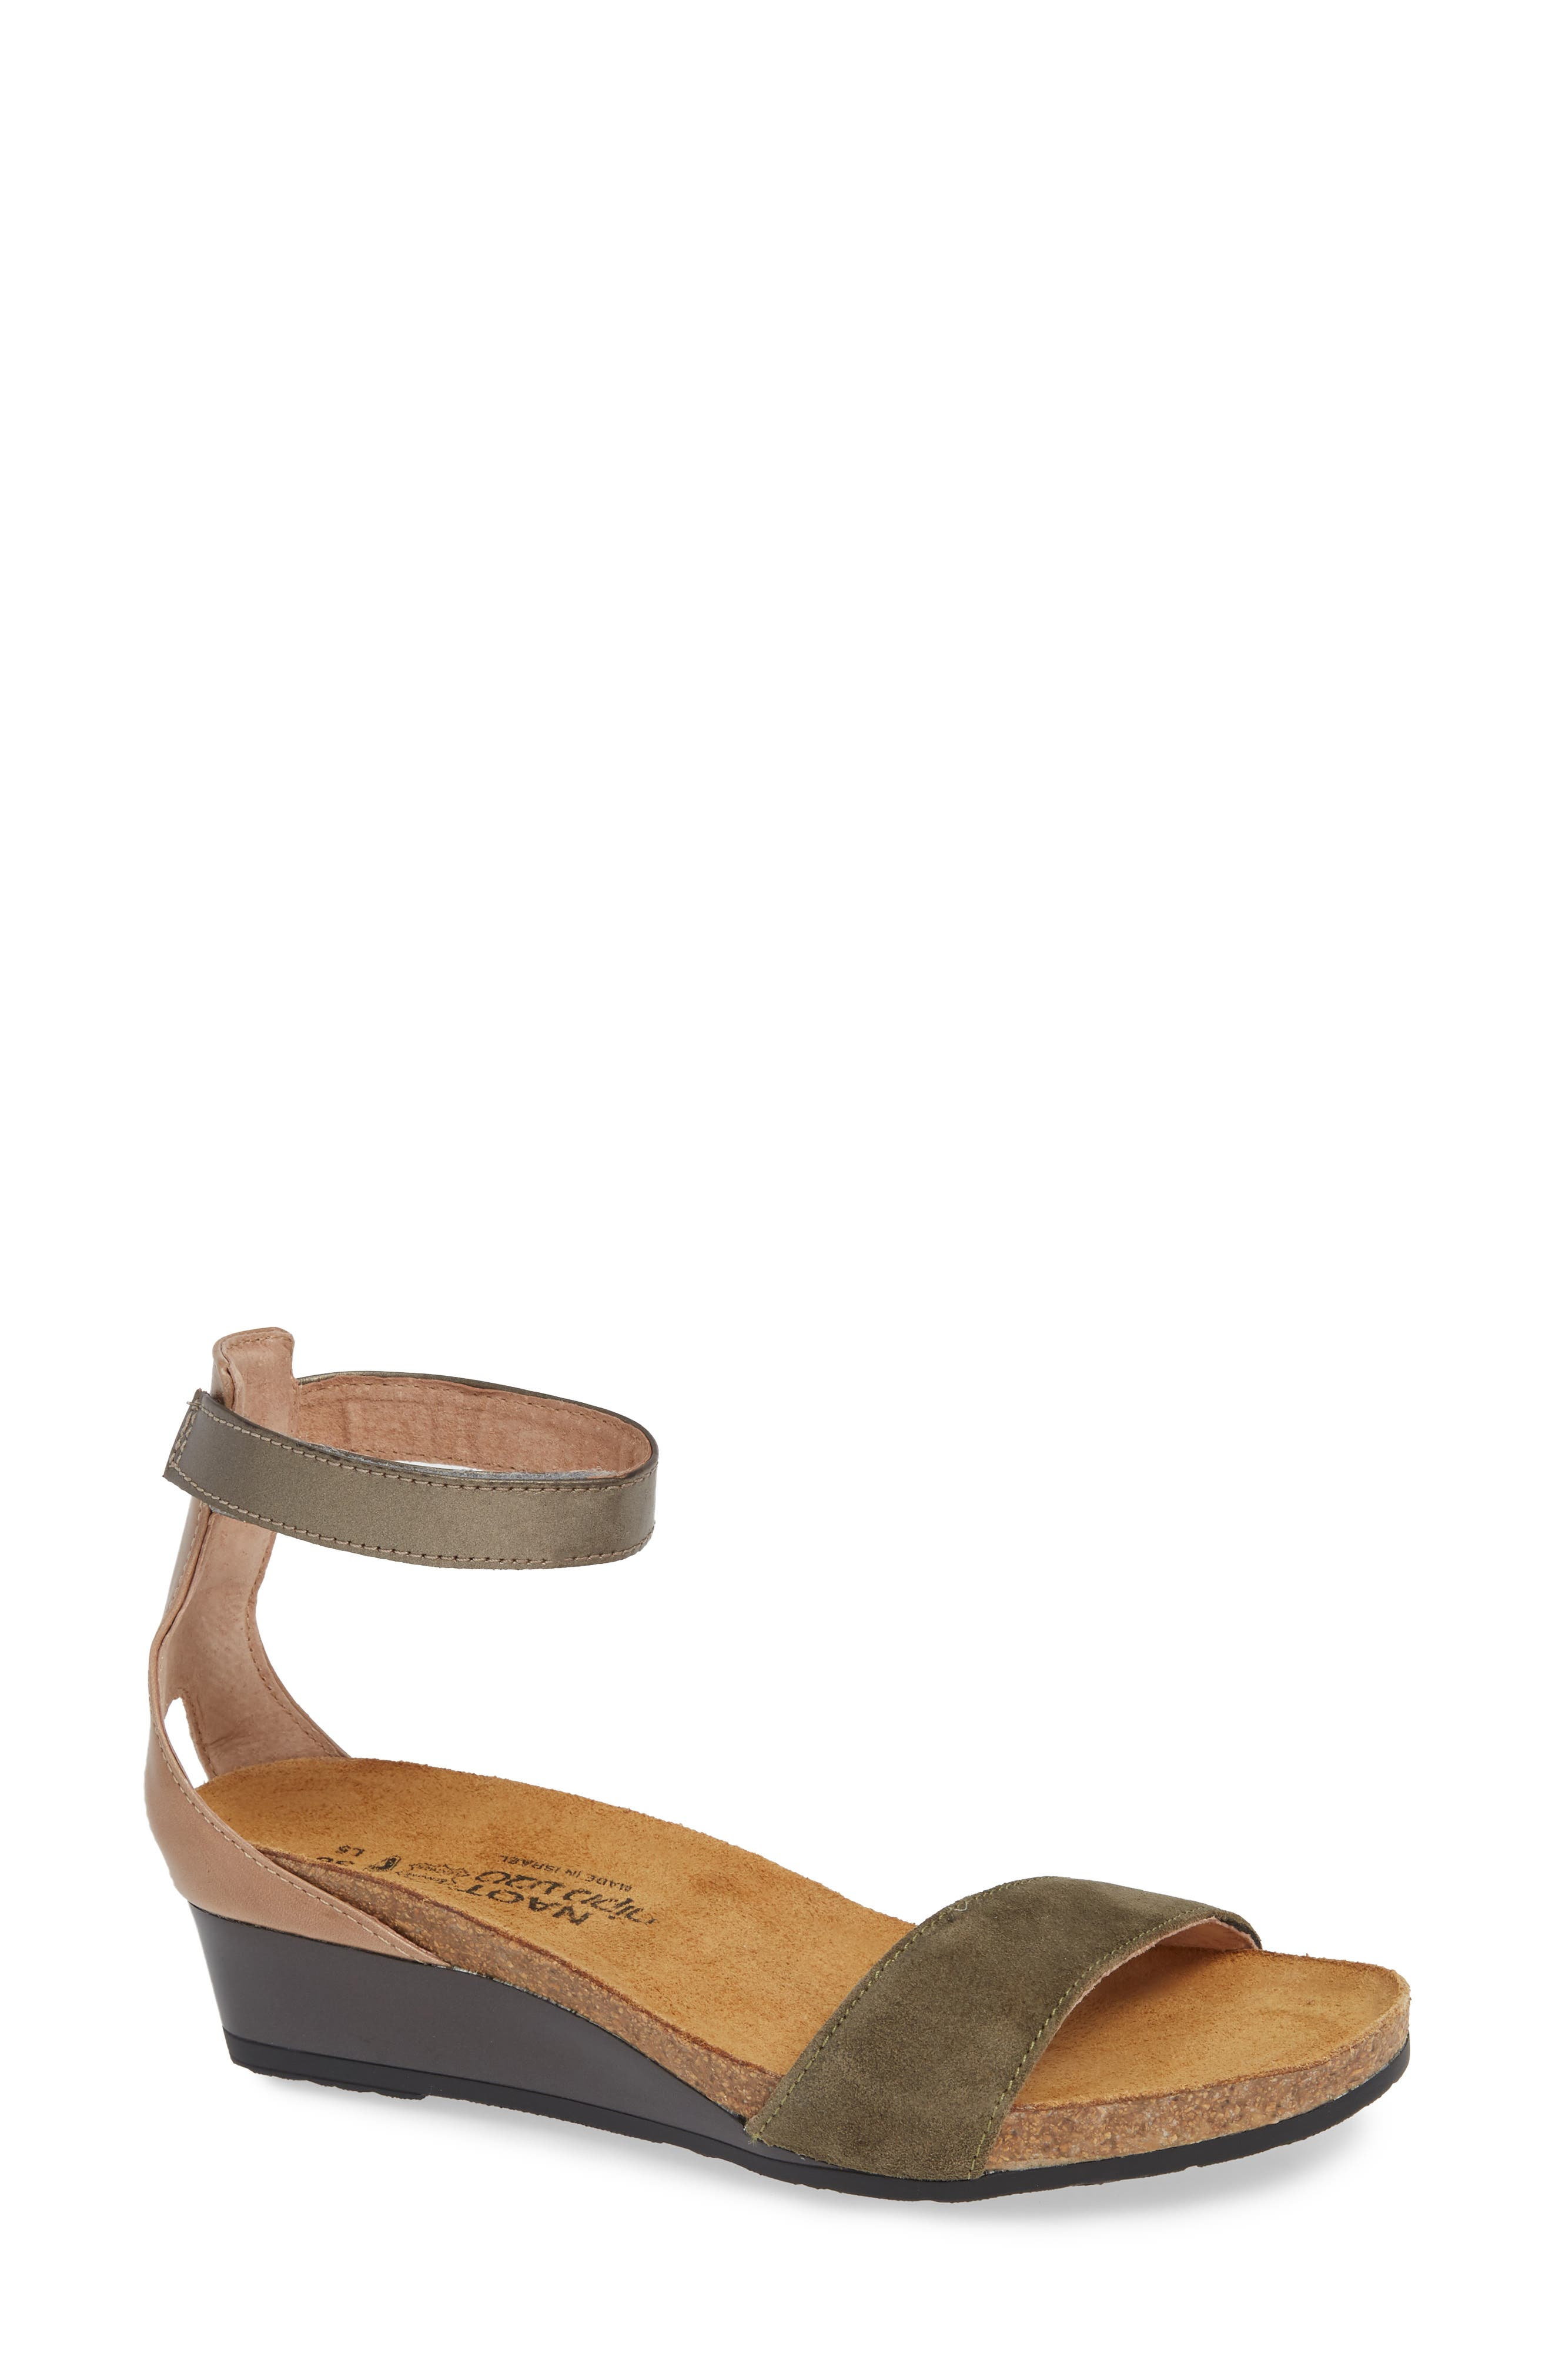 932530178f26 Naot Ankle Strap Sandals for Women